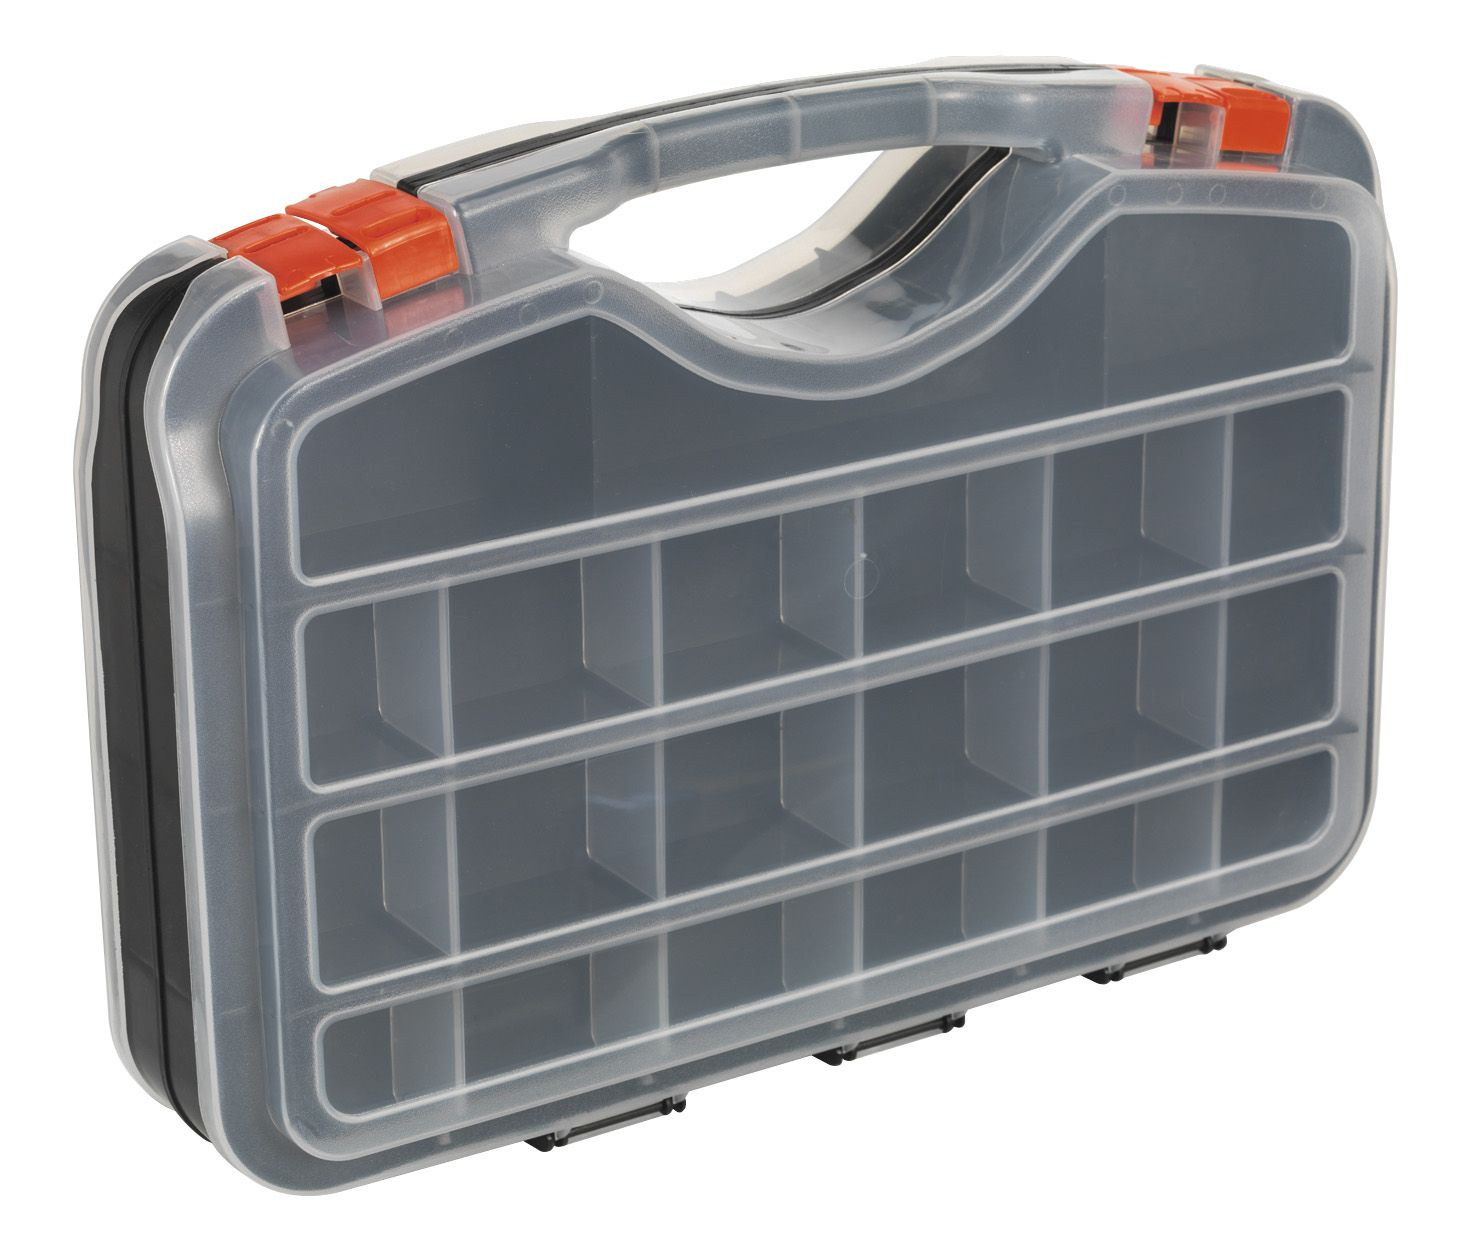 Sealey Parts Storage Case 42 Compartment Double-Sided